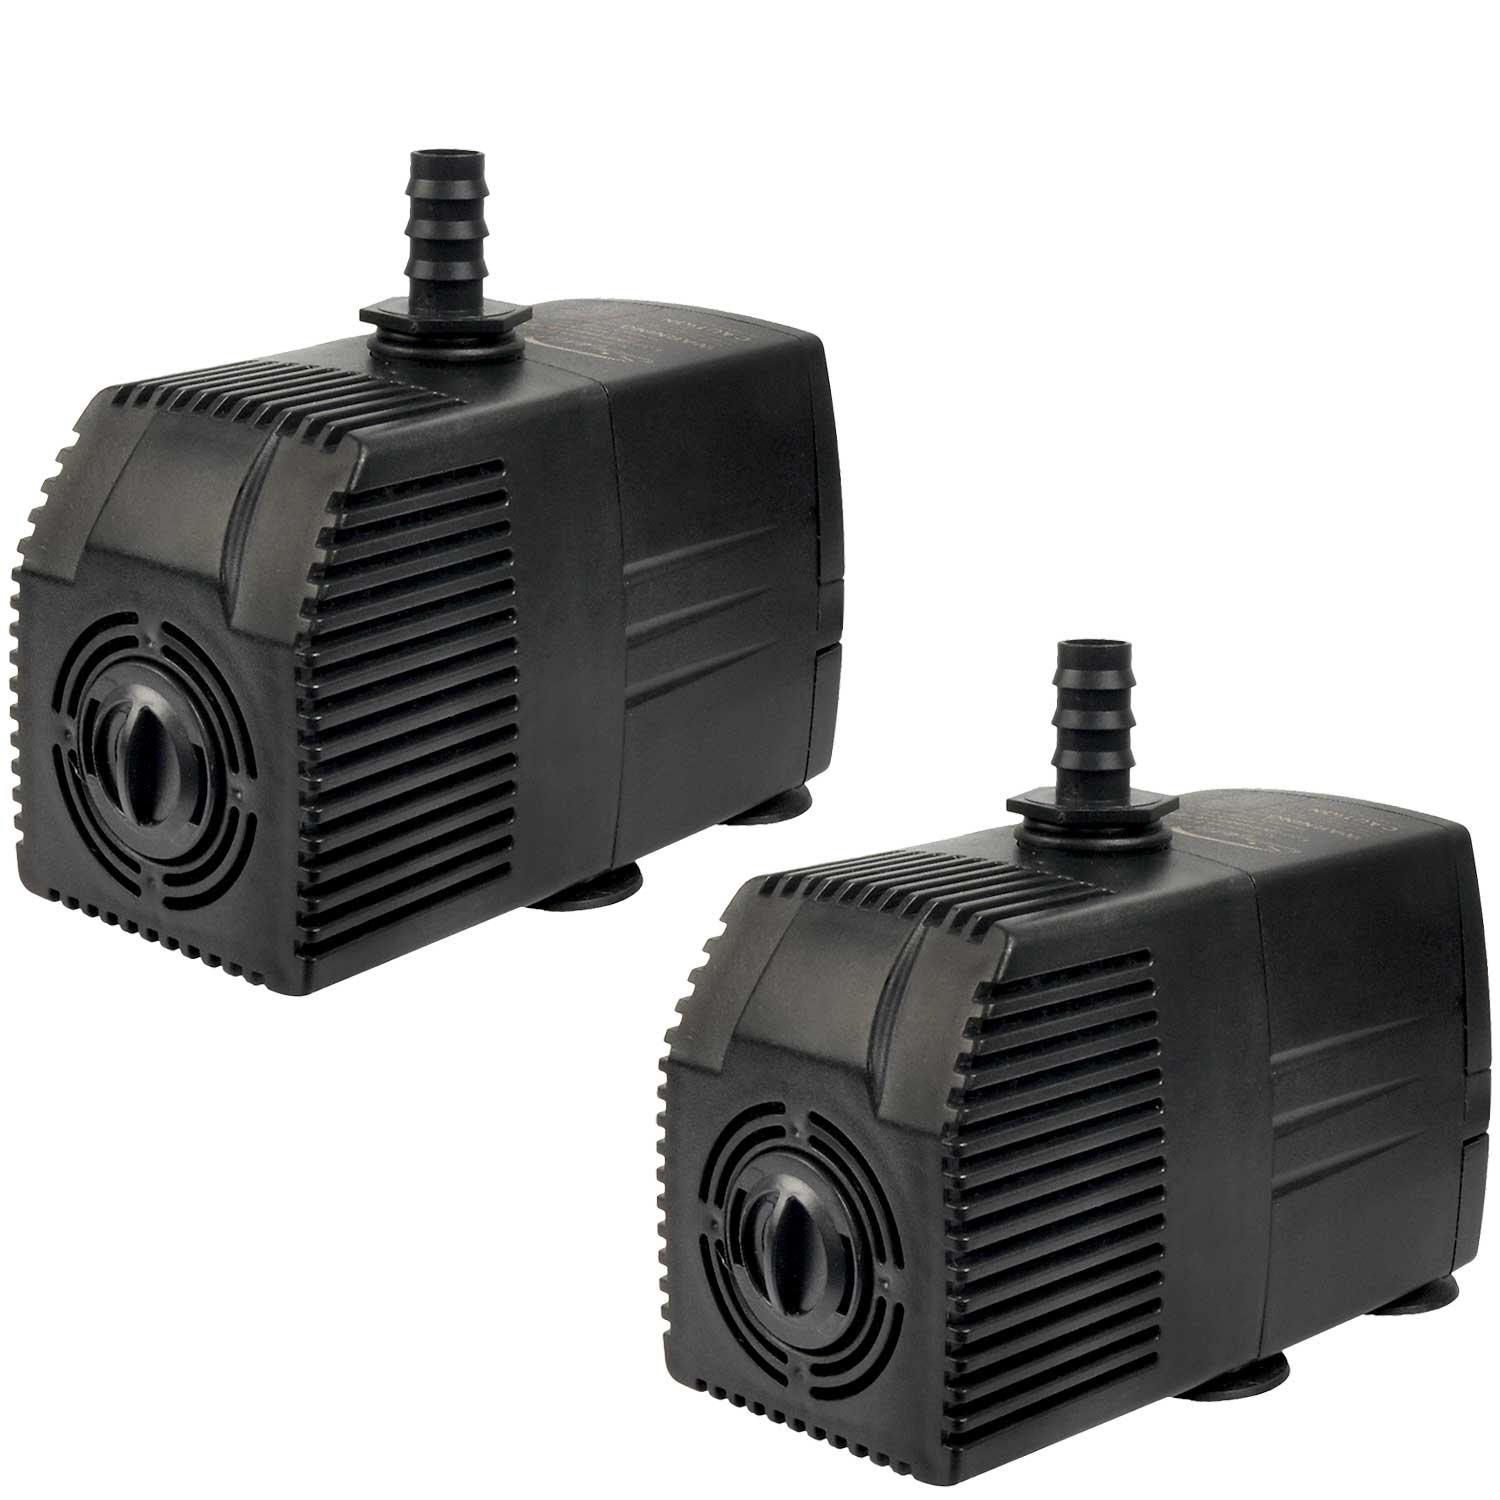 Simple Deluxe LGPUMP400GX2 Fountain Pump, 400 GPH, Black by Simple Deluxe